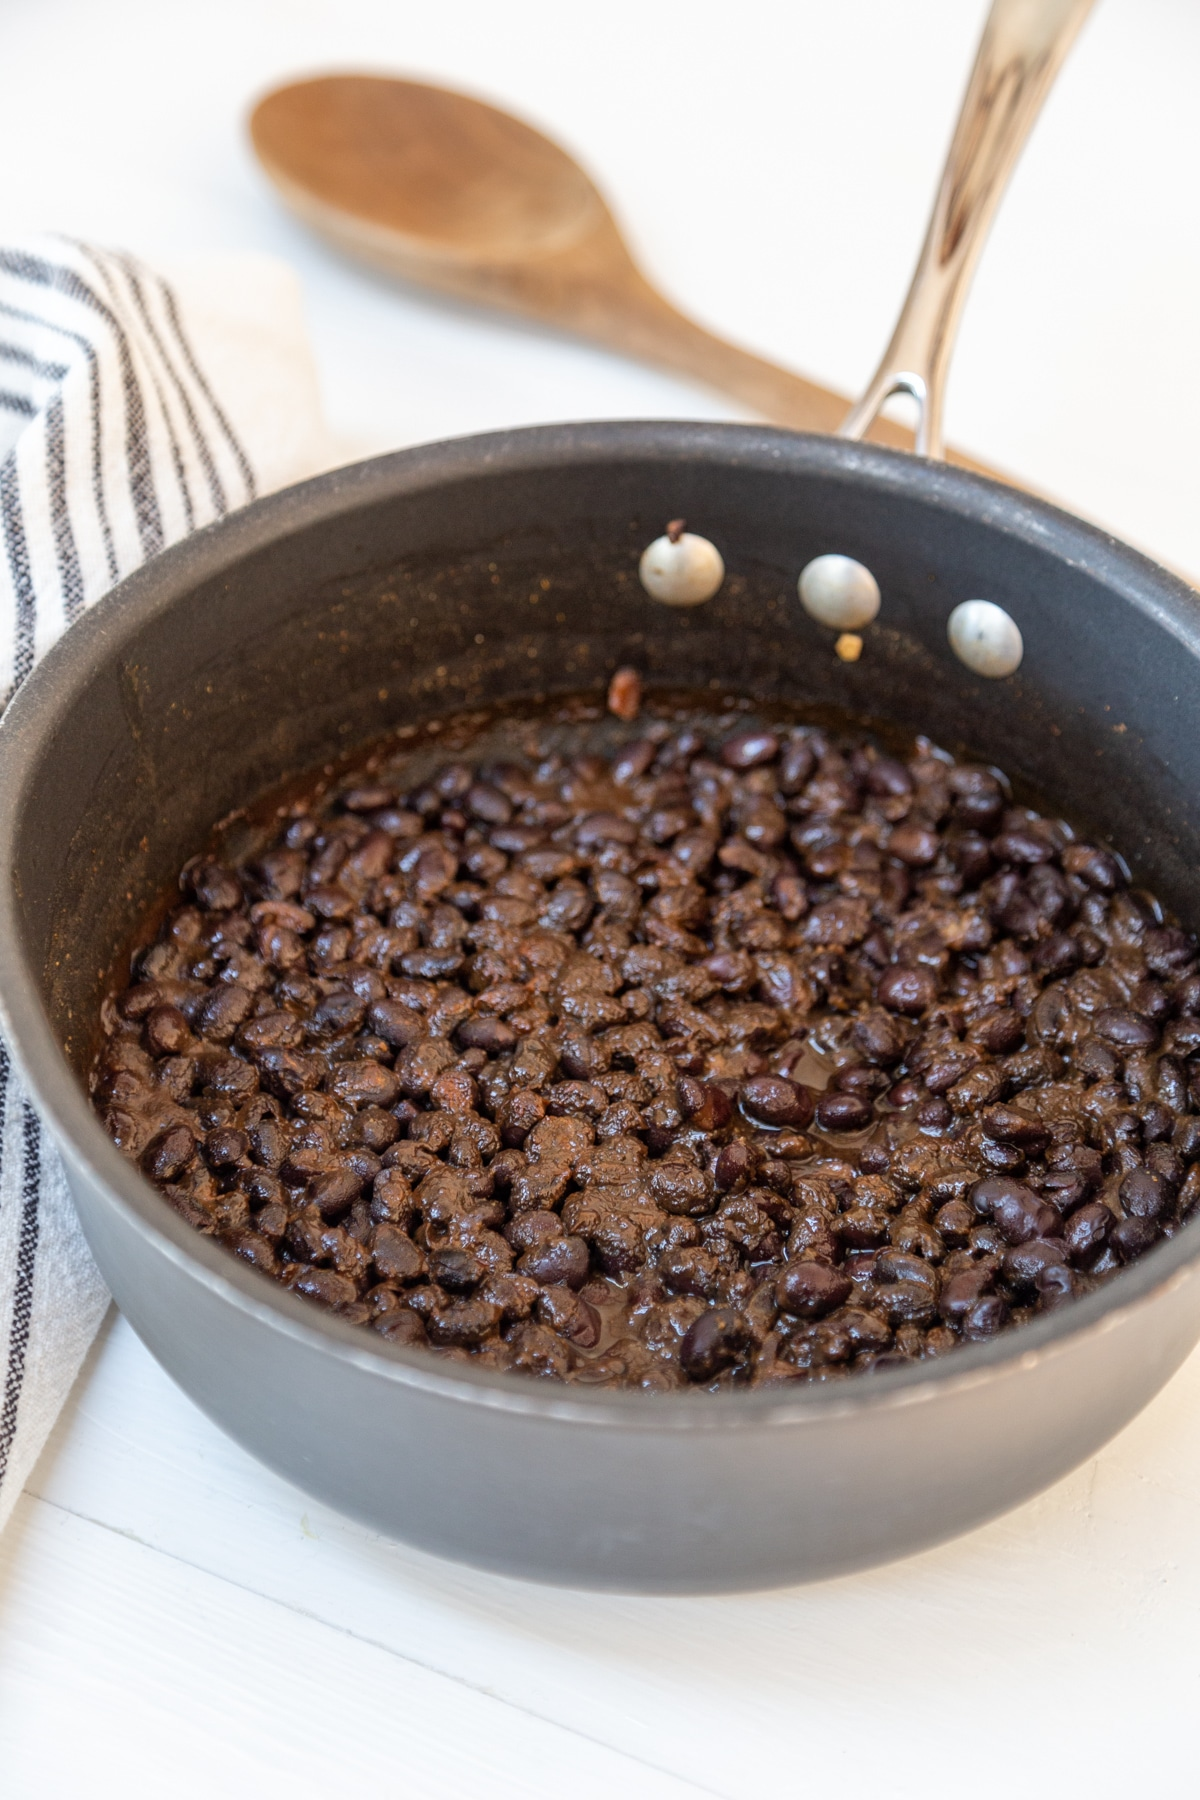 A pot of black beans with a wooden spoon and a black and white striped towel in the background.